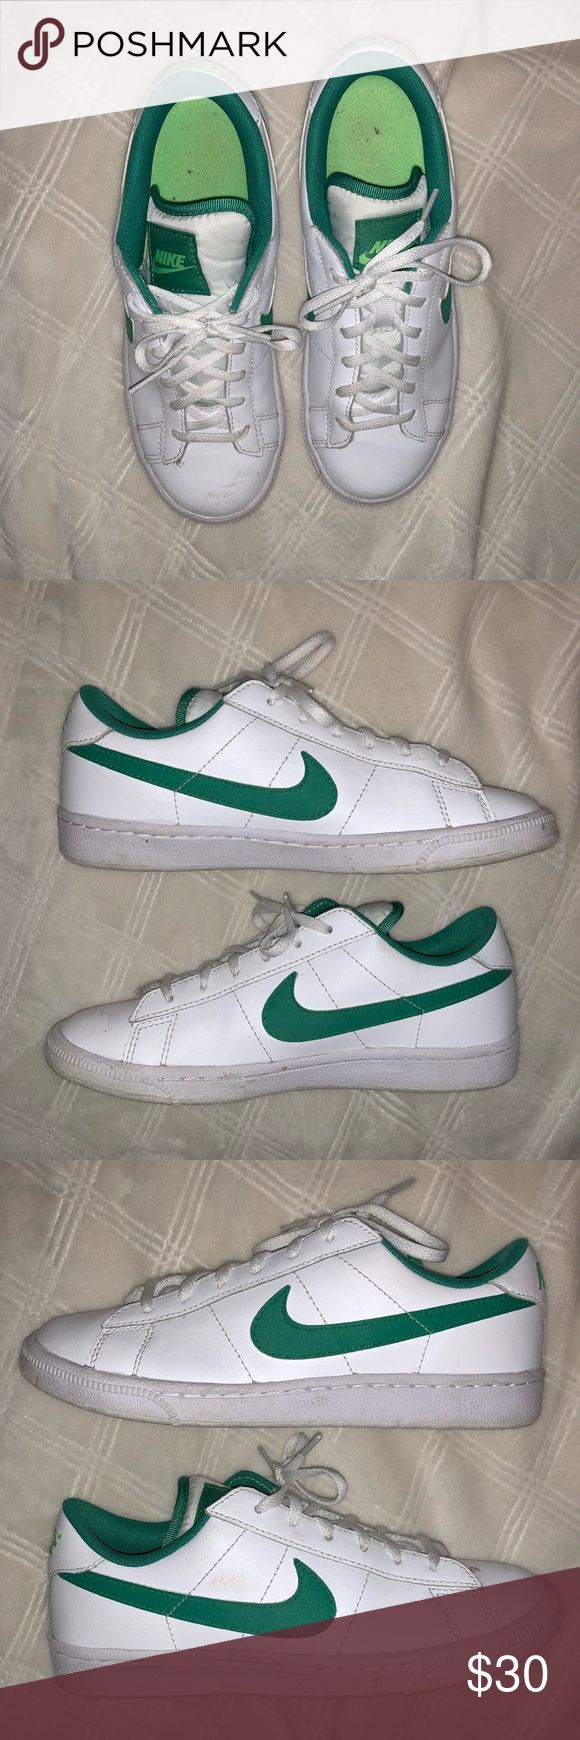 Nike Kids Golf Golfing Shoes Sneakers Preowned Nike US Size 5Y. Worn for golfing two times only before they didn't fit anymore. Scuff marks on the white canvas parts of both Shoes, as shown in pictures.  Inside tag says 23.5 cm. Nike Shoes Sneakers